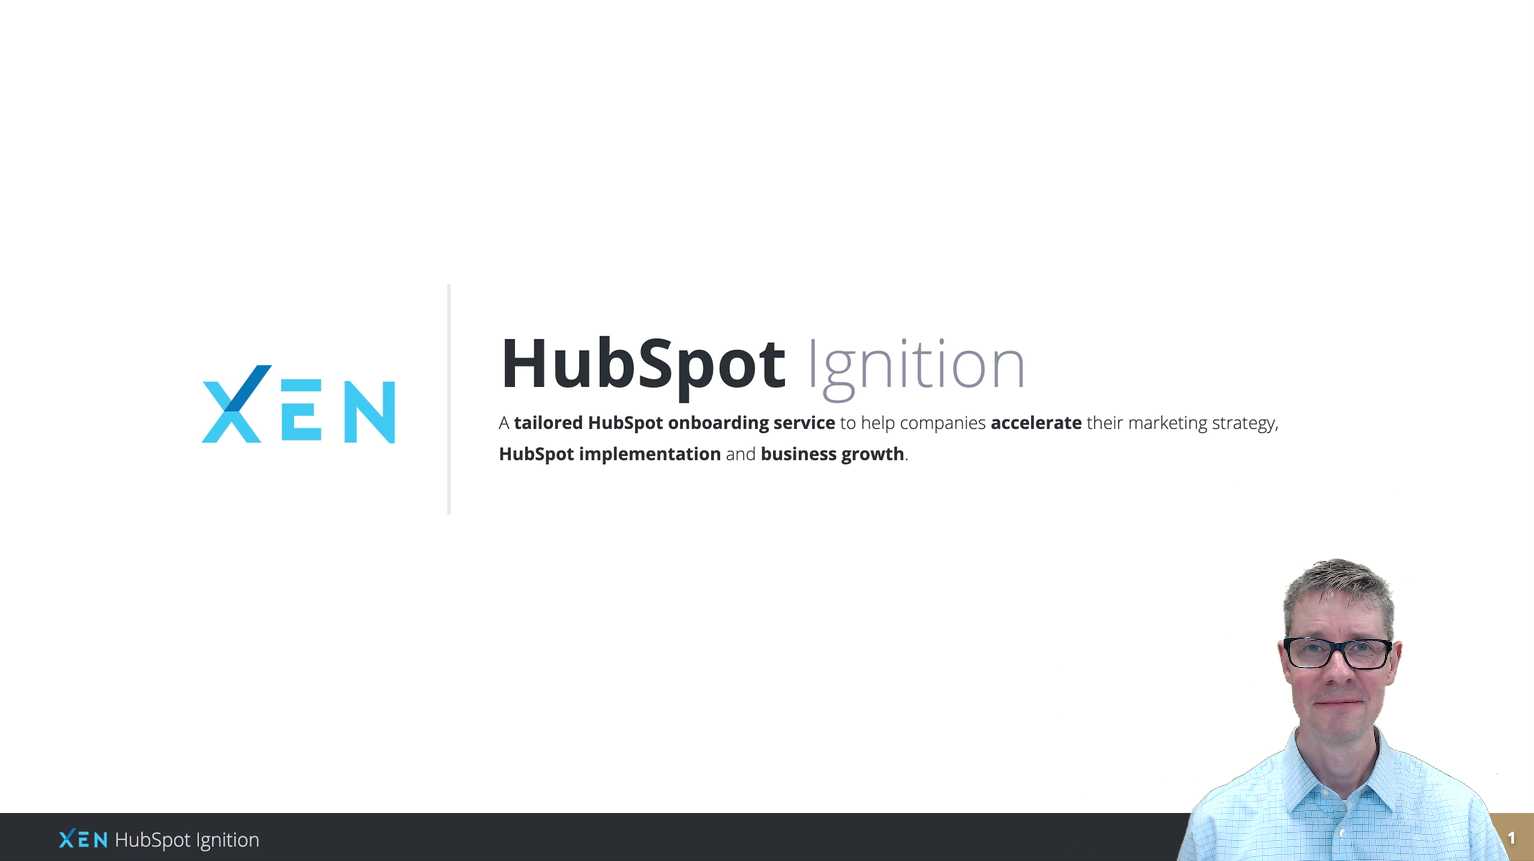 hubspot-ignition